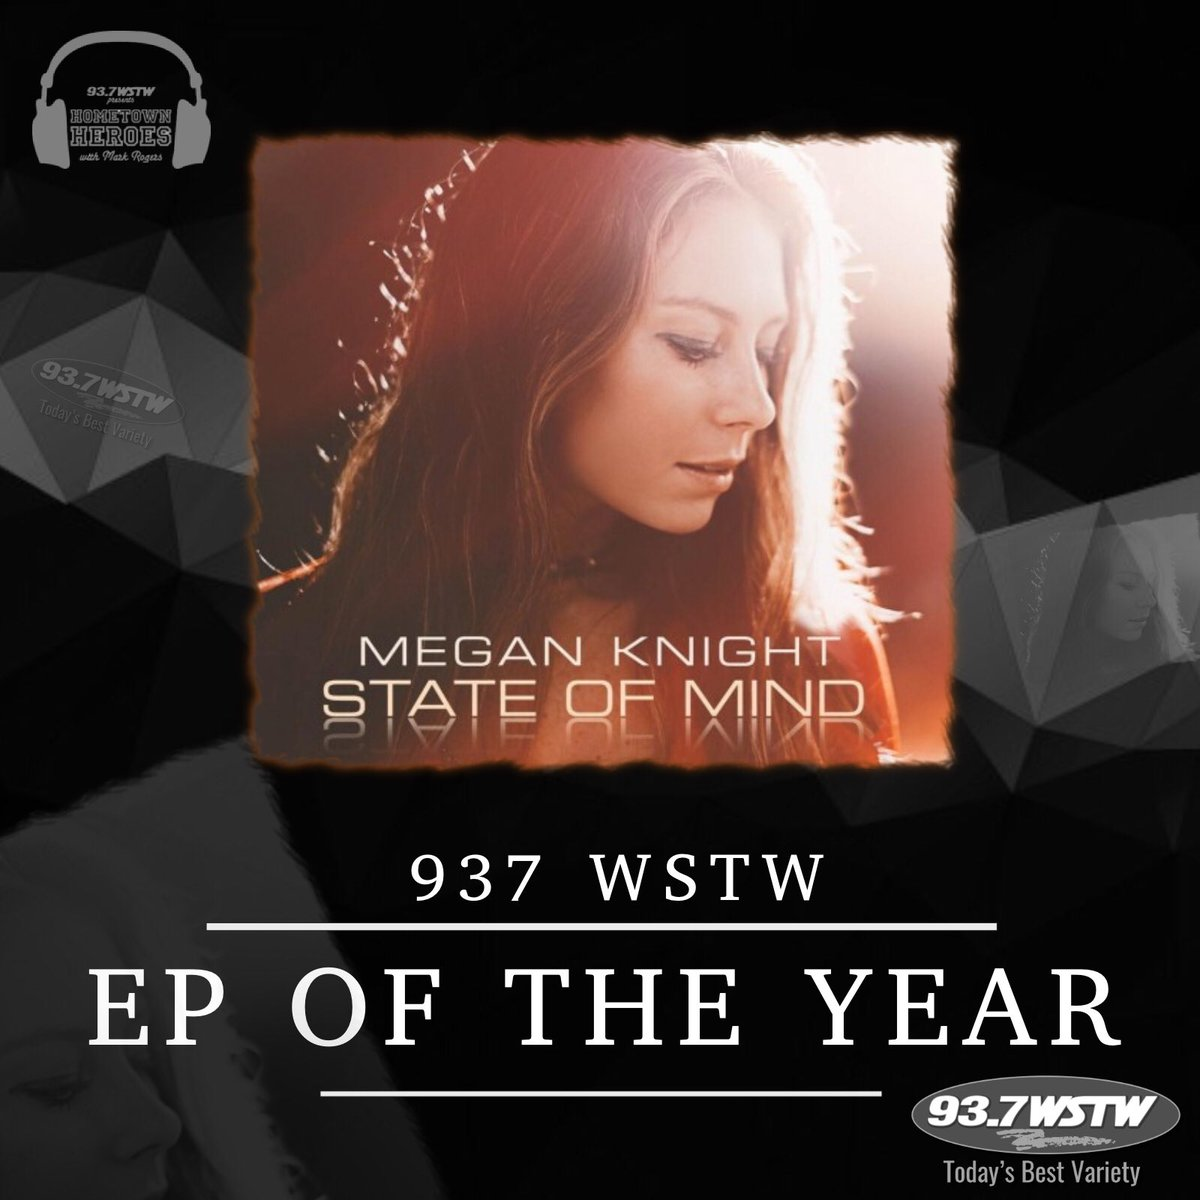 RT @meganknight20: So this happened!!! Thank you @937WSTW #EPoftheYear #awards #music #ThankYou #Blessed https://t.co/WEry6Pe8PX